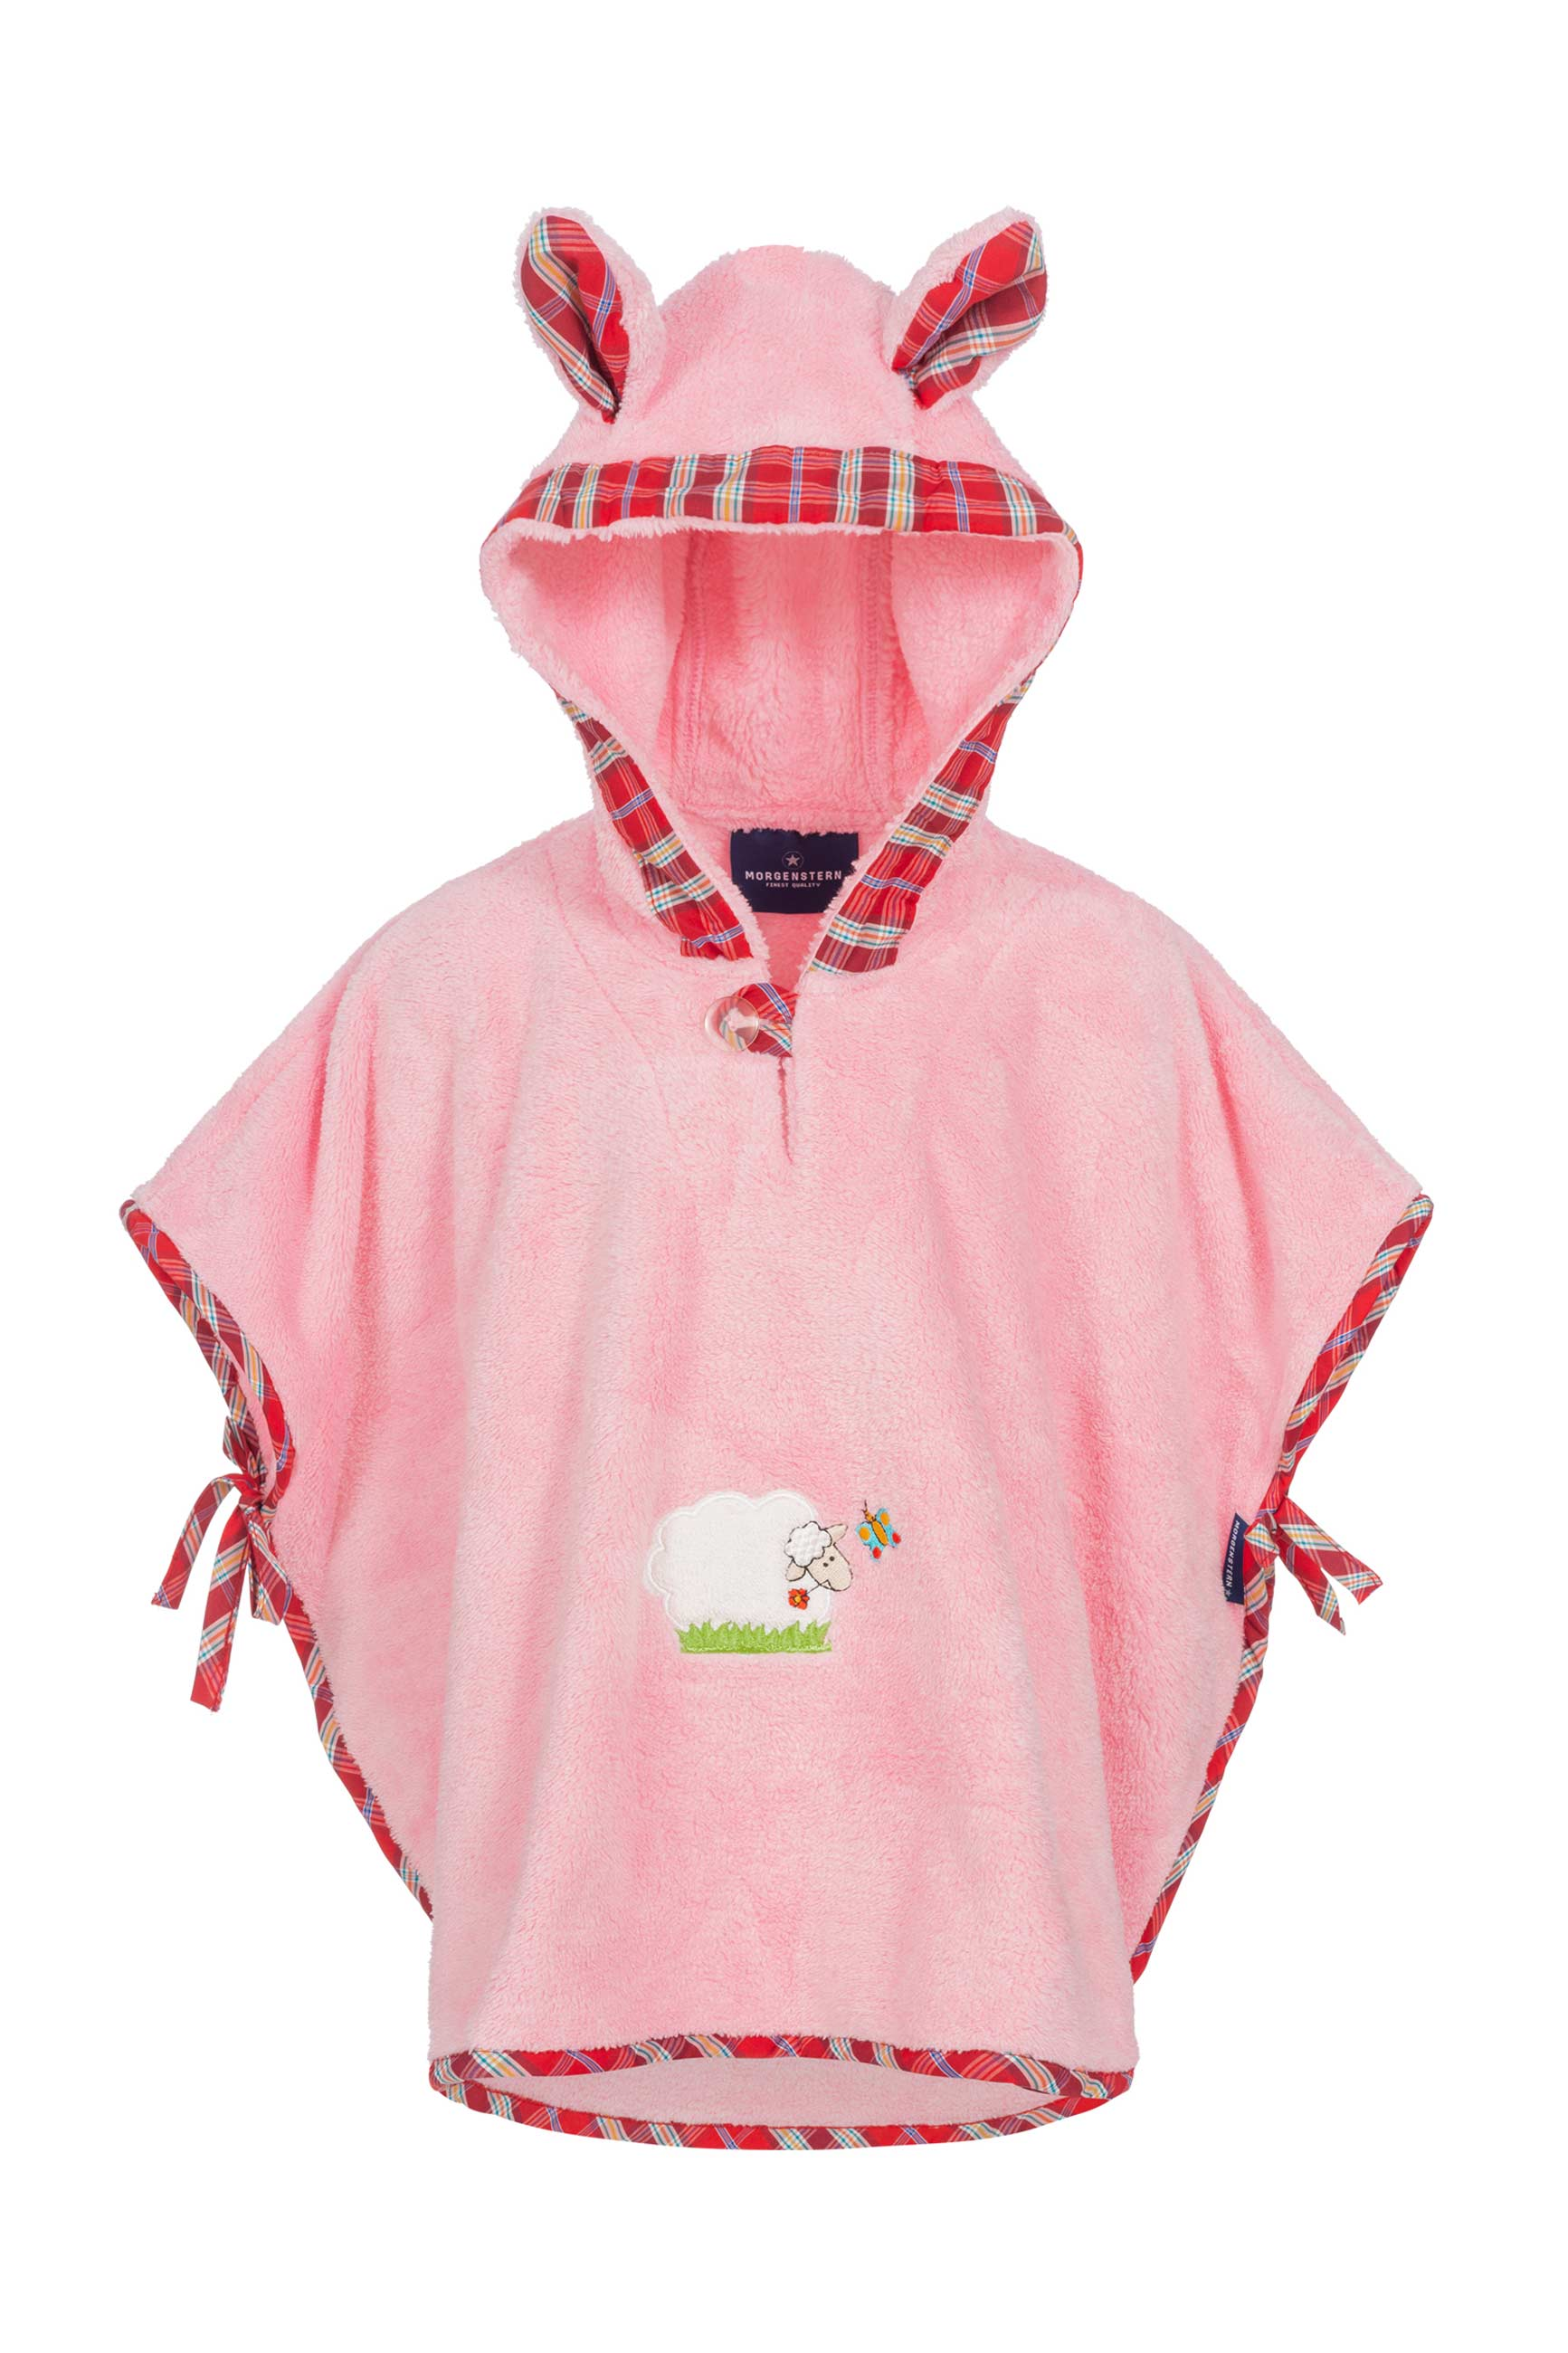 Morgenstern Badeponcho Sleepy Sheepy Schmetterling Serie, 100 % Microfaser, rosa, 1-3 Jahre